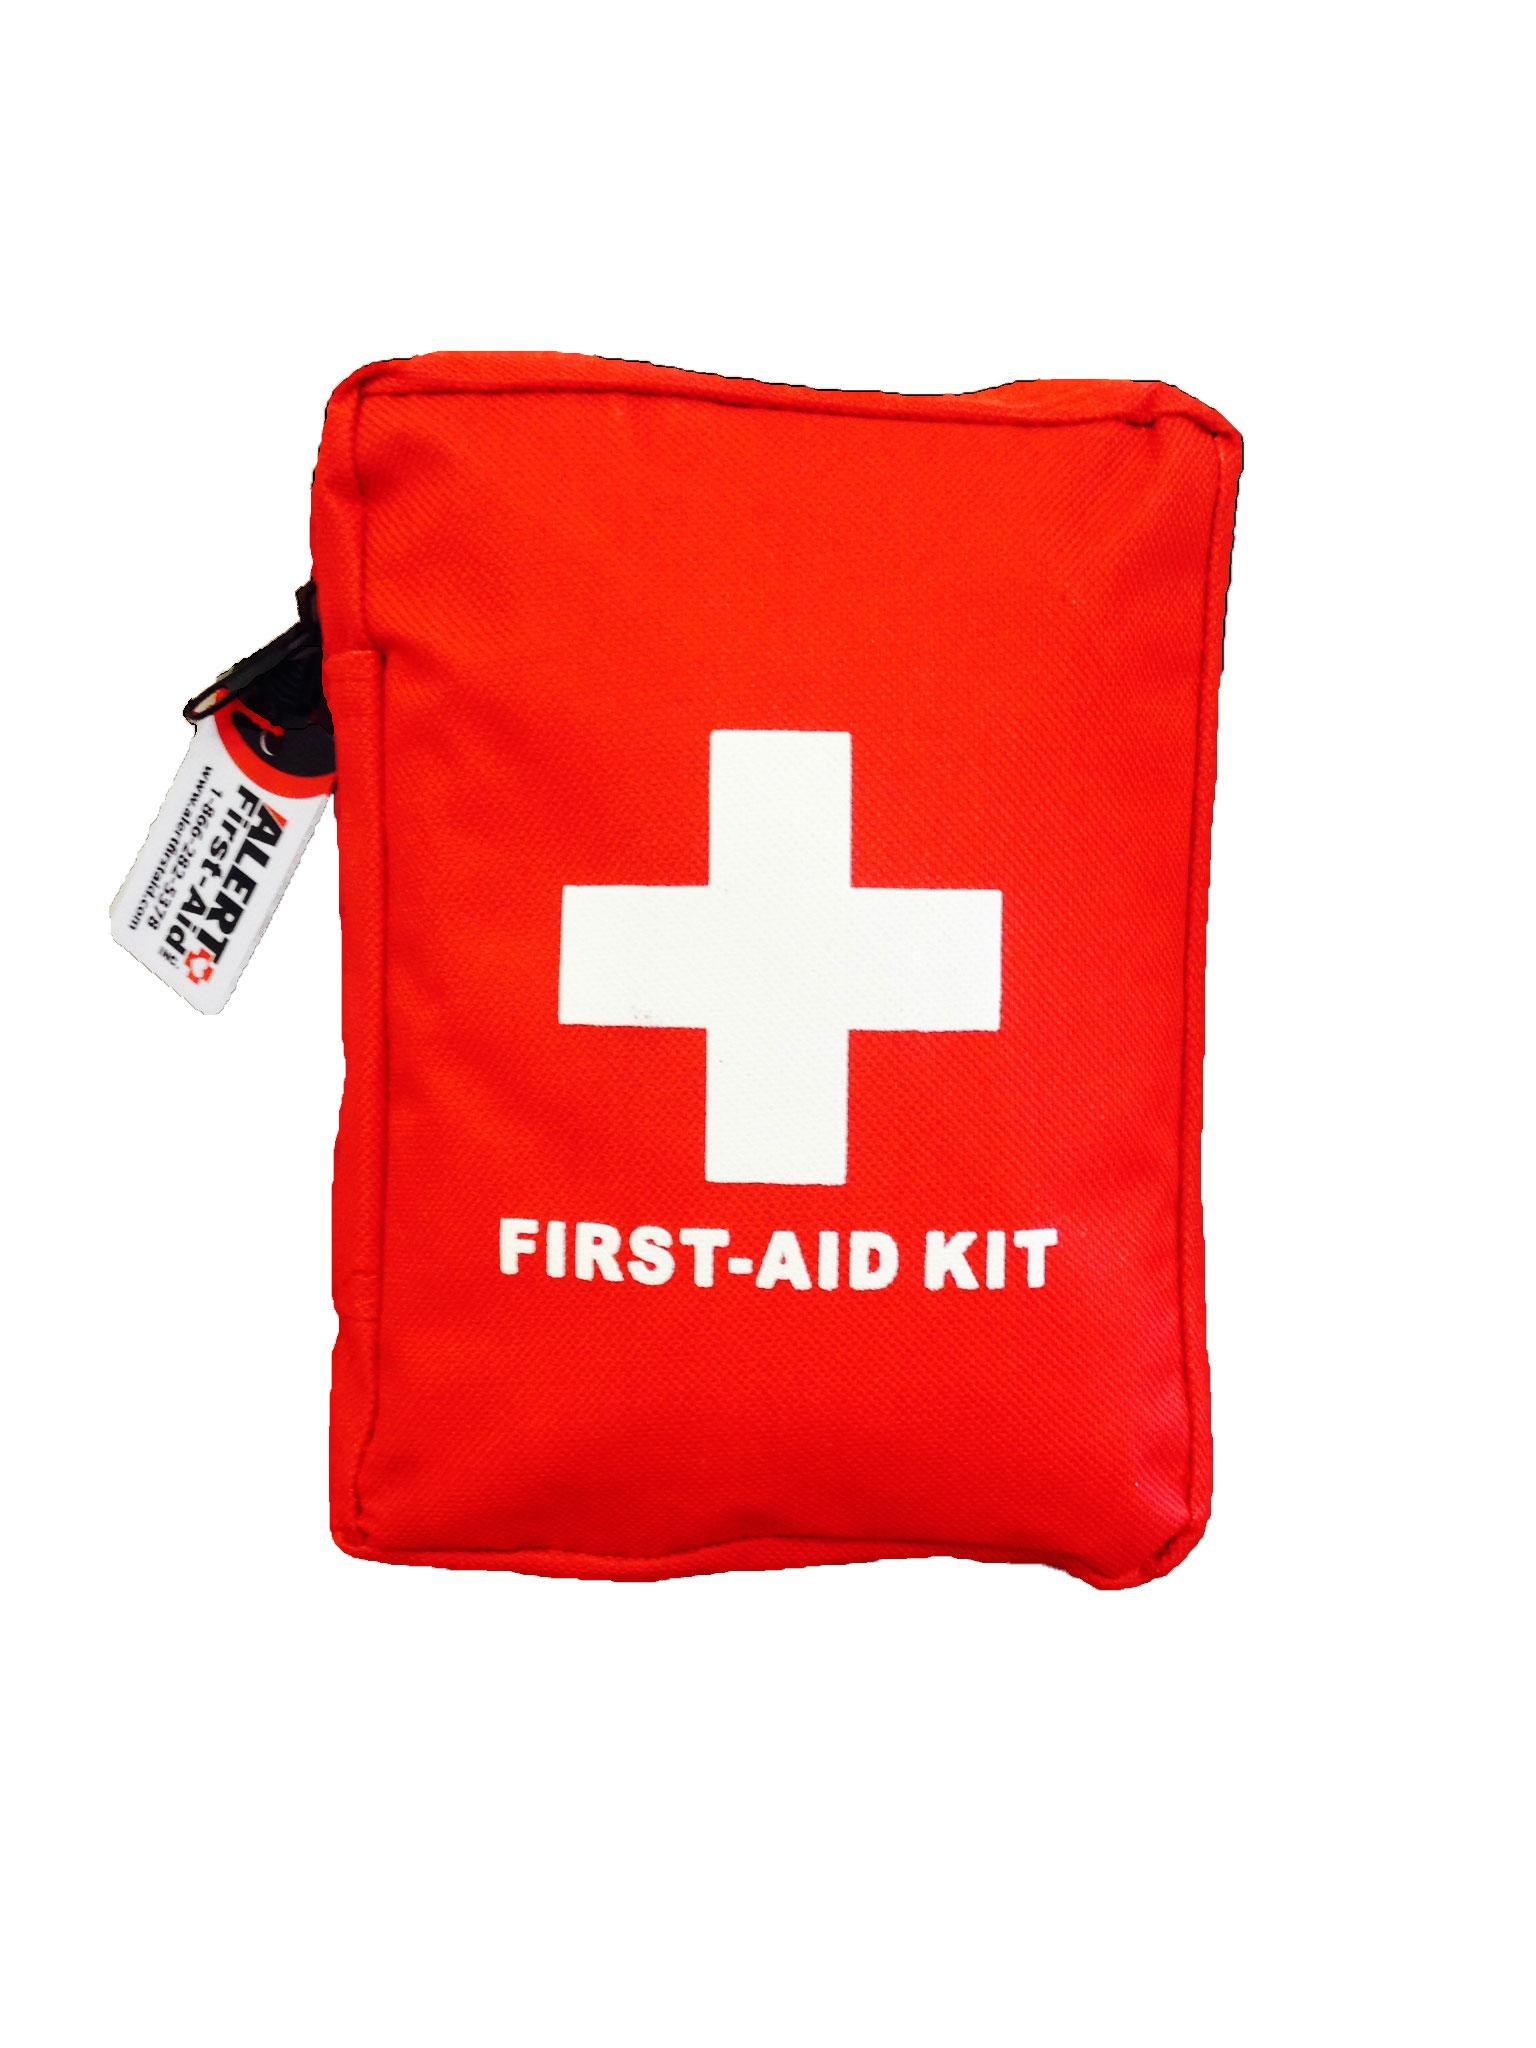 Custom First Aid Kit image